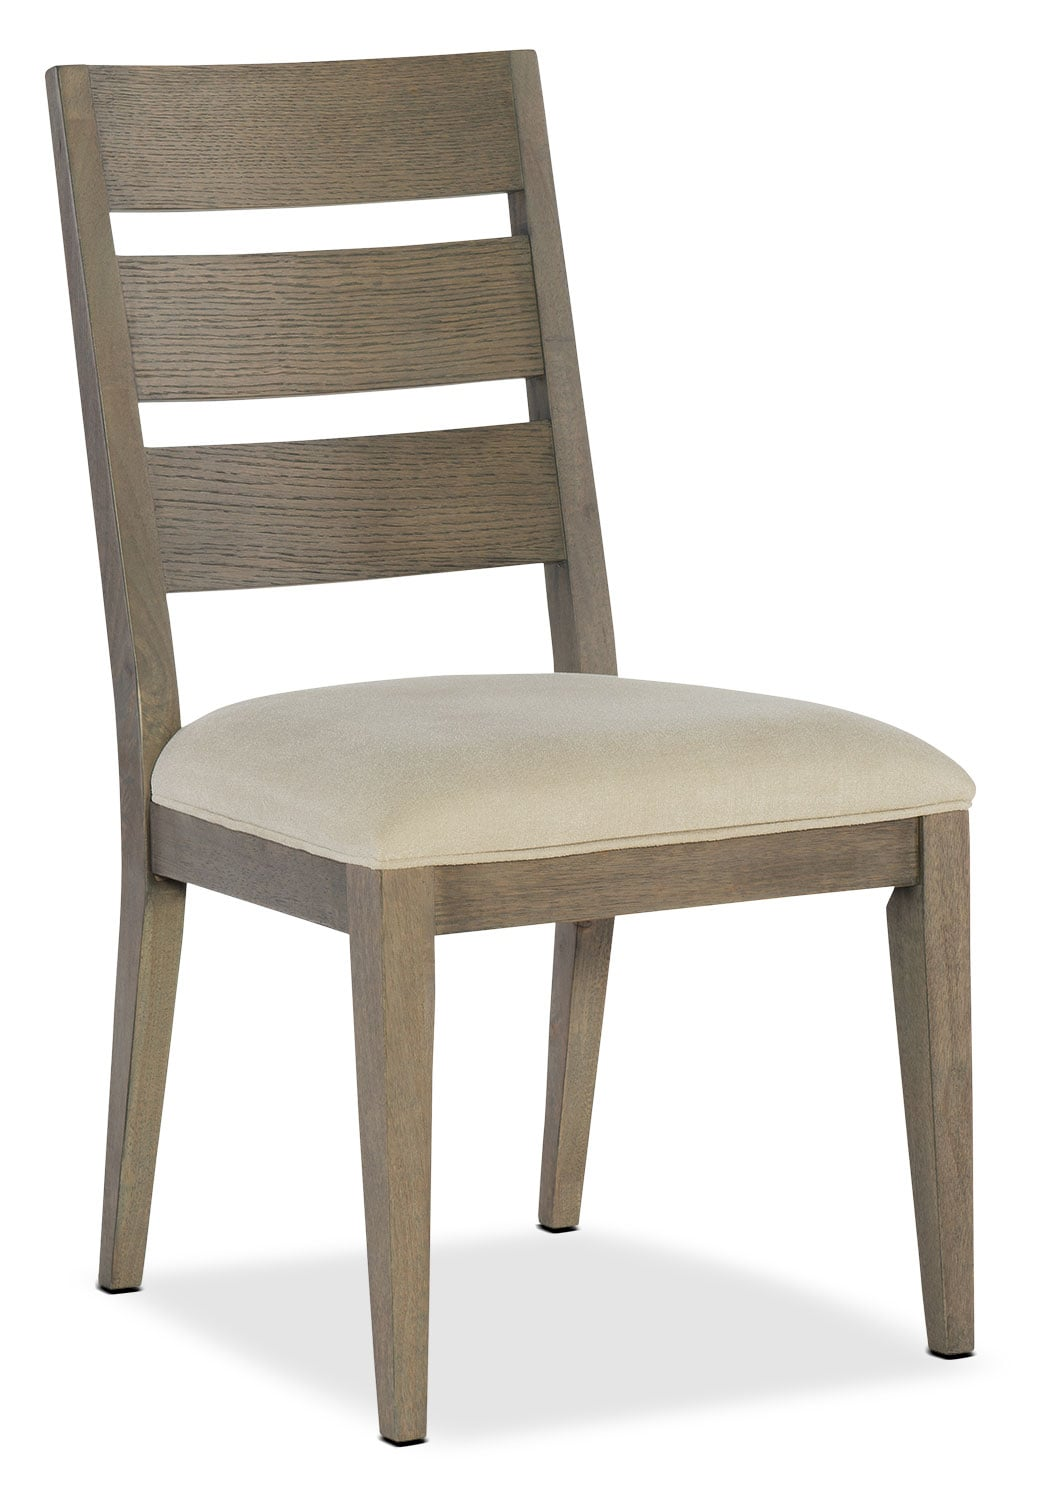 Dining Room Furniture - Rachael Ray Highline Ladder Side Chair - Greige